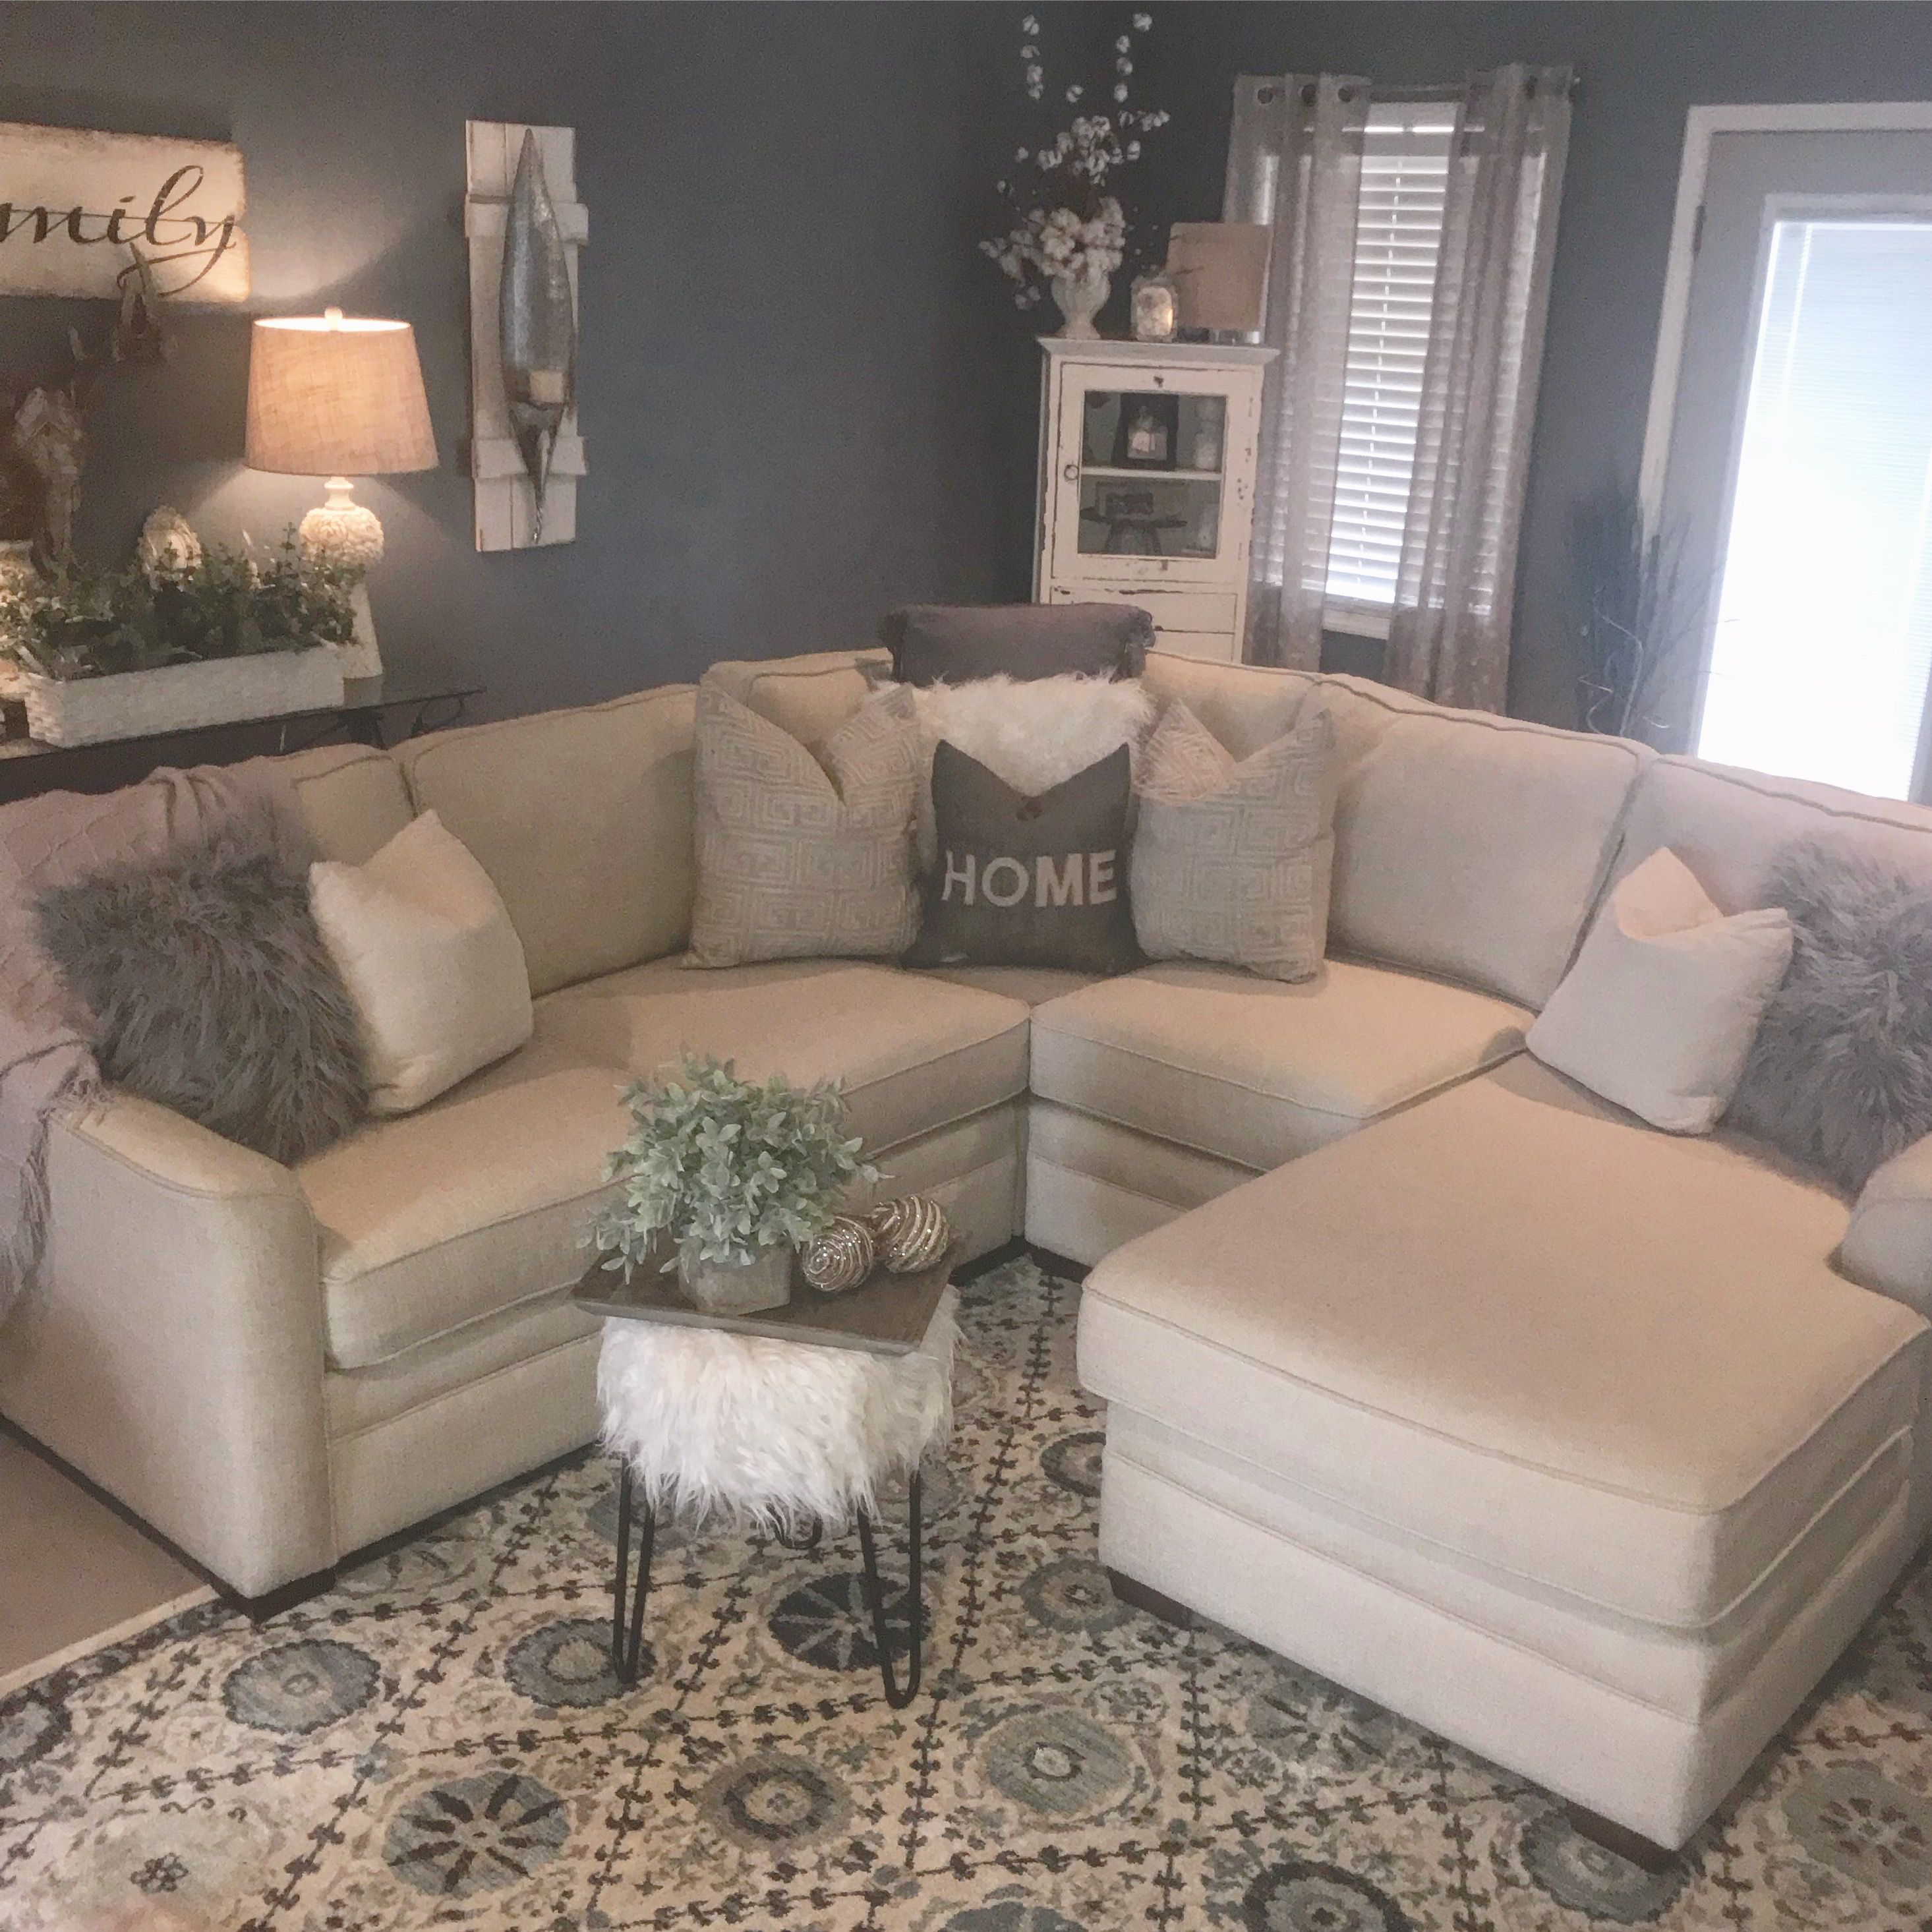 Best Pin By Amanda On My Style Decor Awkward Living Room 400 x 300